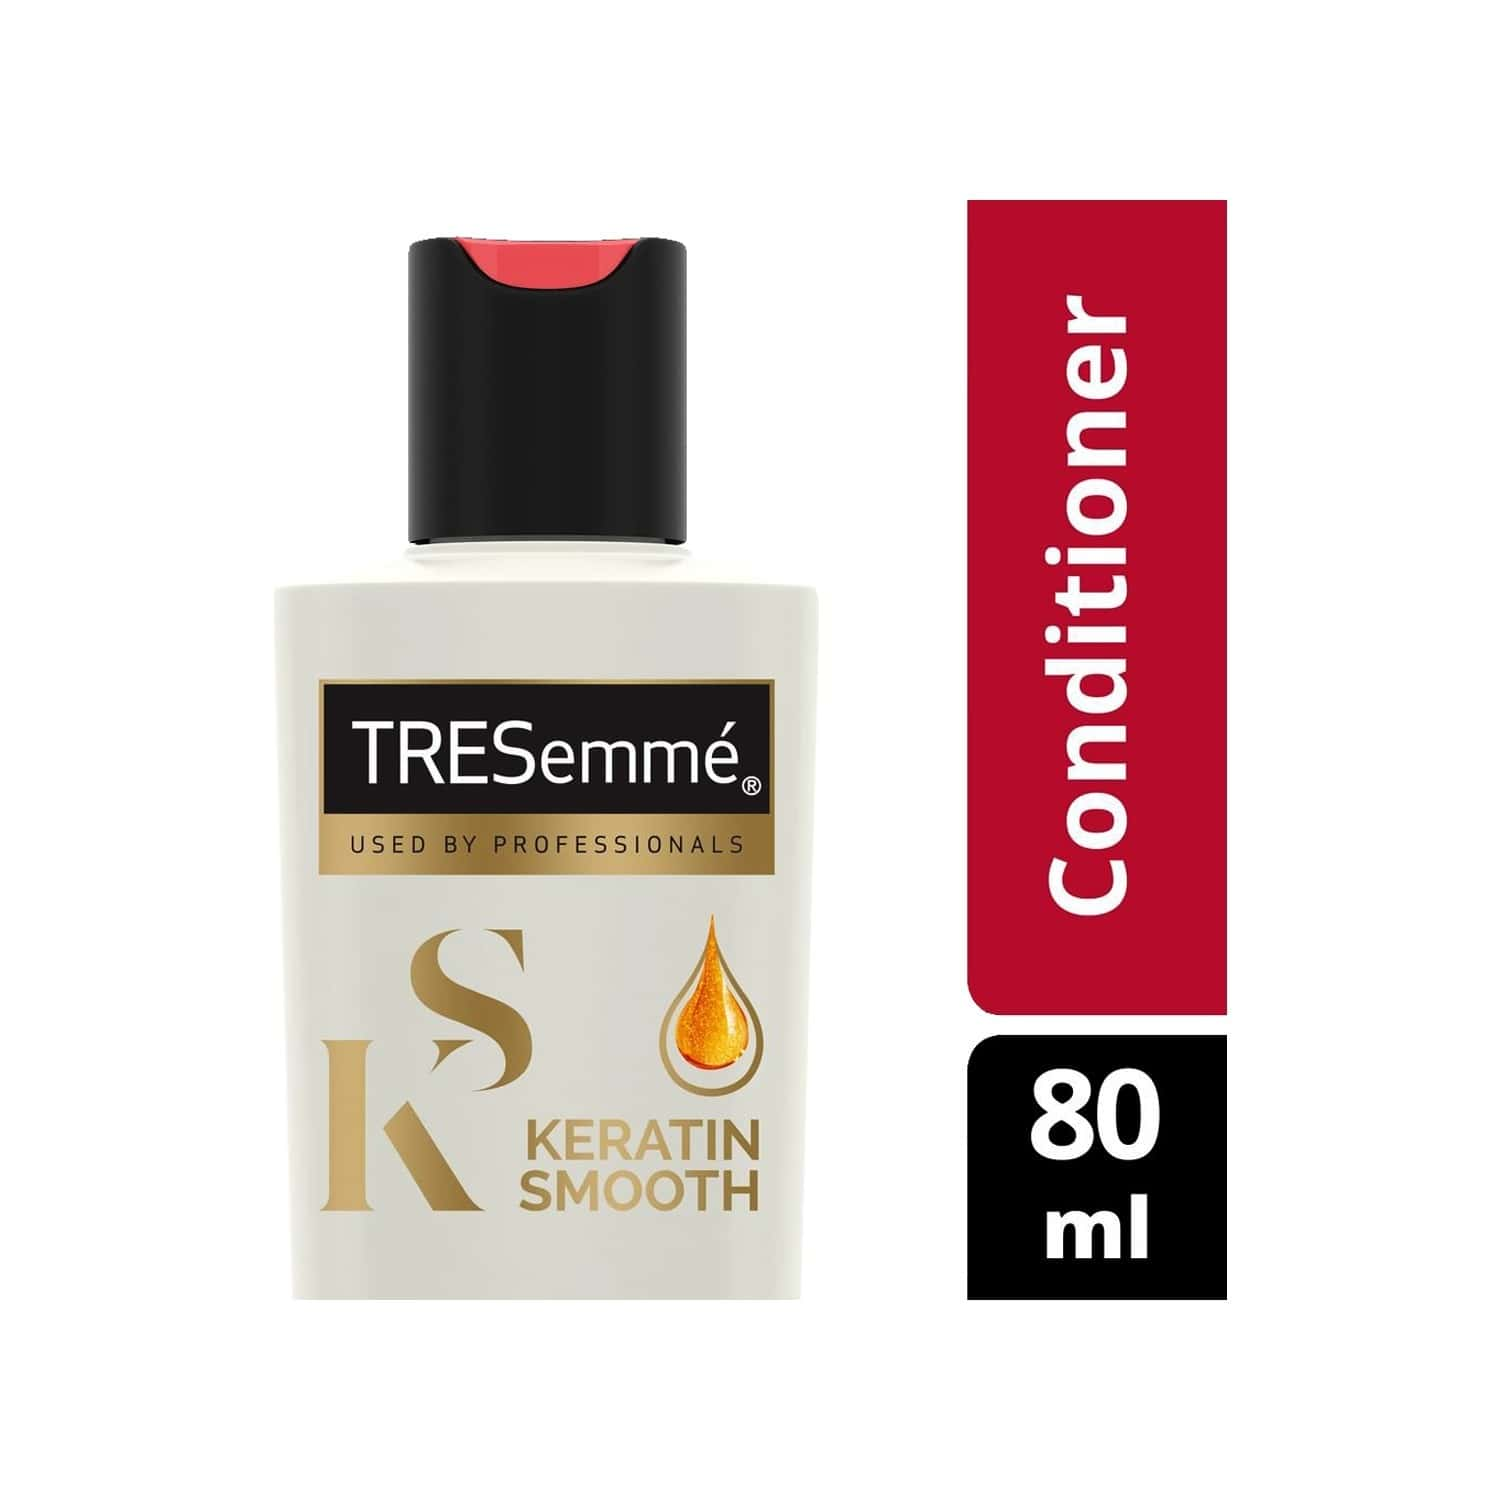 Tresemme Keratin Smooth Conditioner - 80 Ml